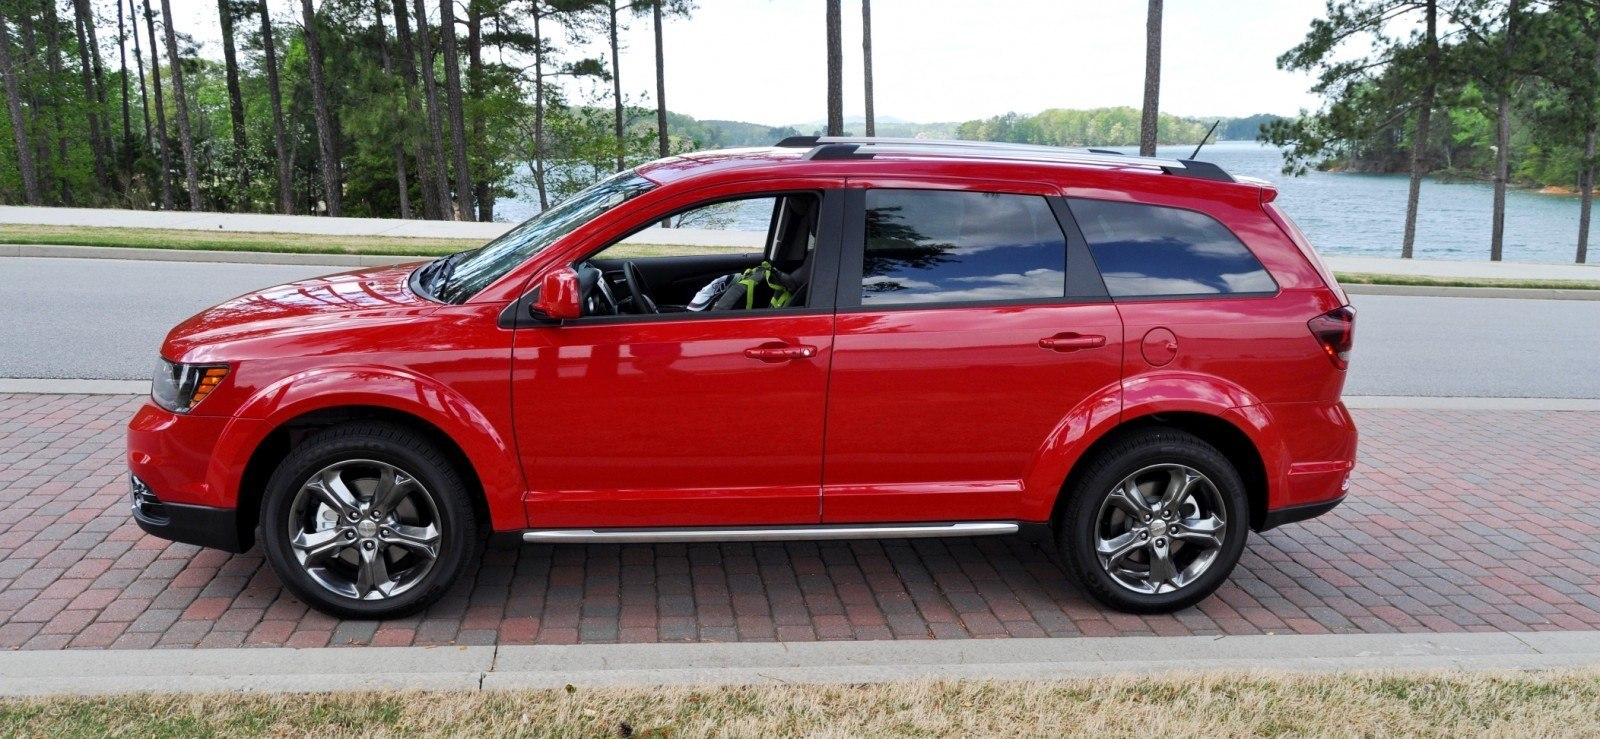 Road Test Review - 2014 Dodge Journey Crossroad - We Would Cross the Road to Avoid 26